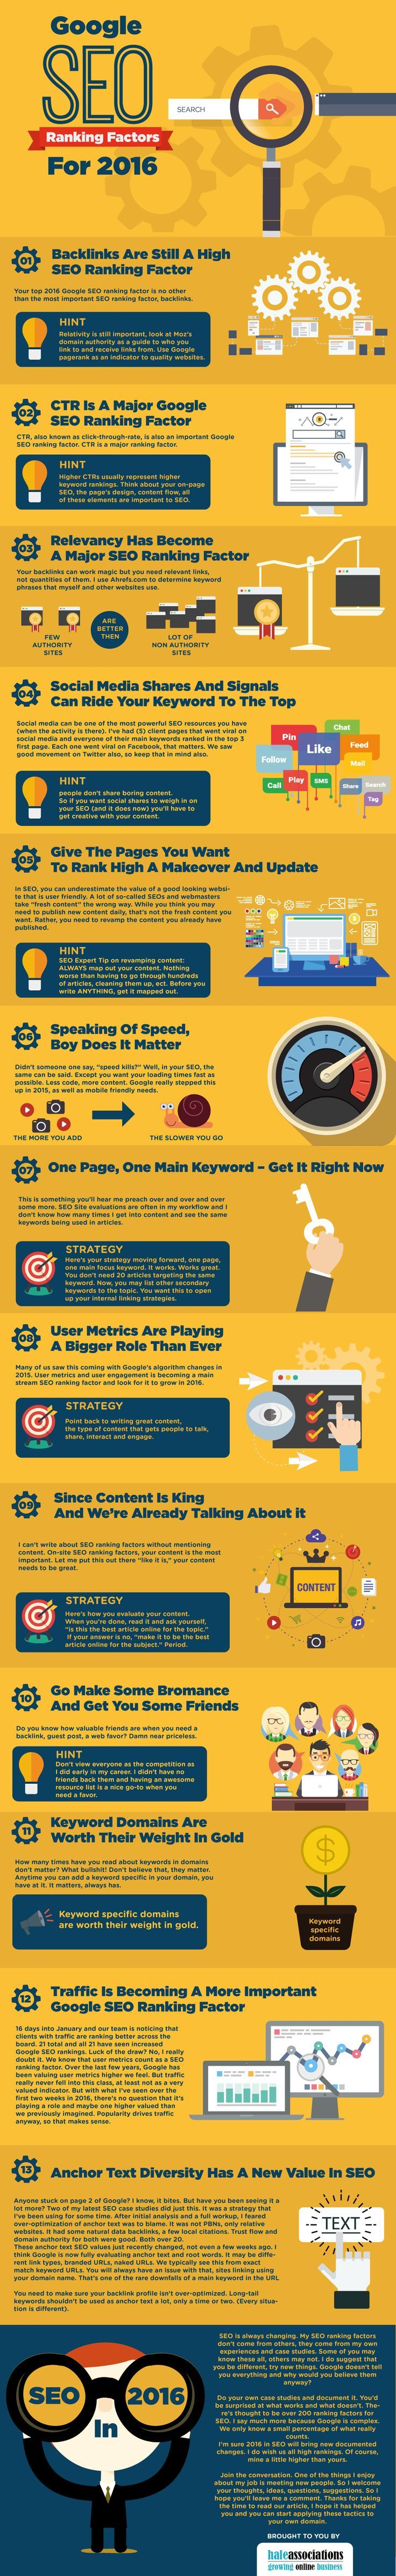 Google SEO ranking factors for 2016.